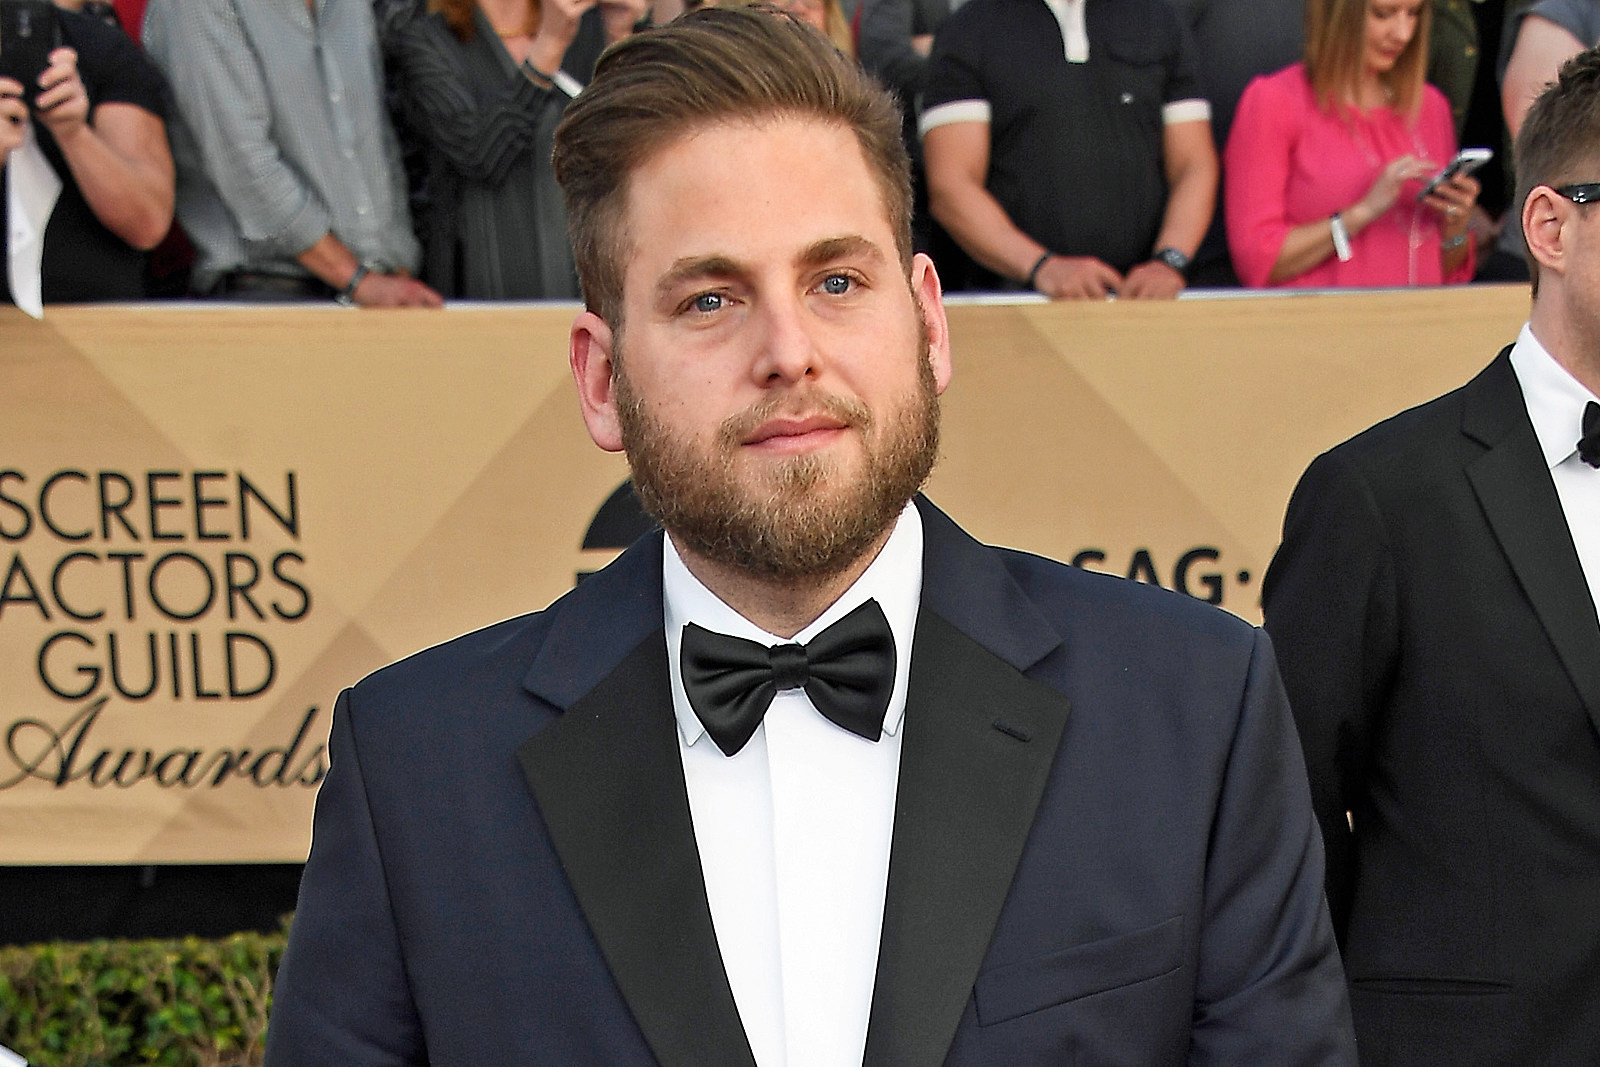 Jonah Hill Looks Like a 'Maniac' in First Netflix Series Photos